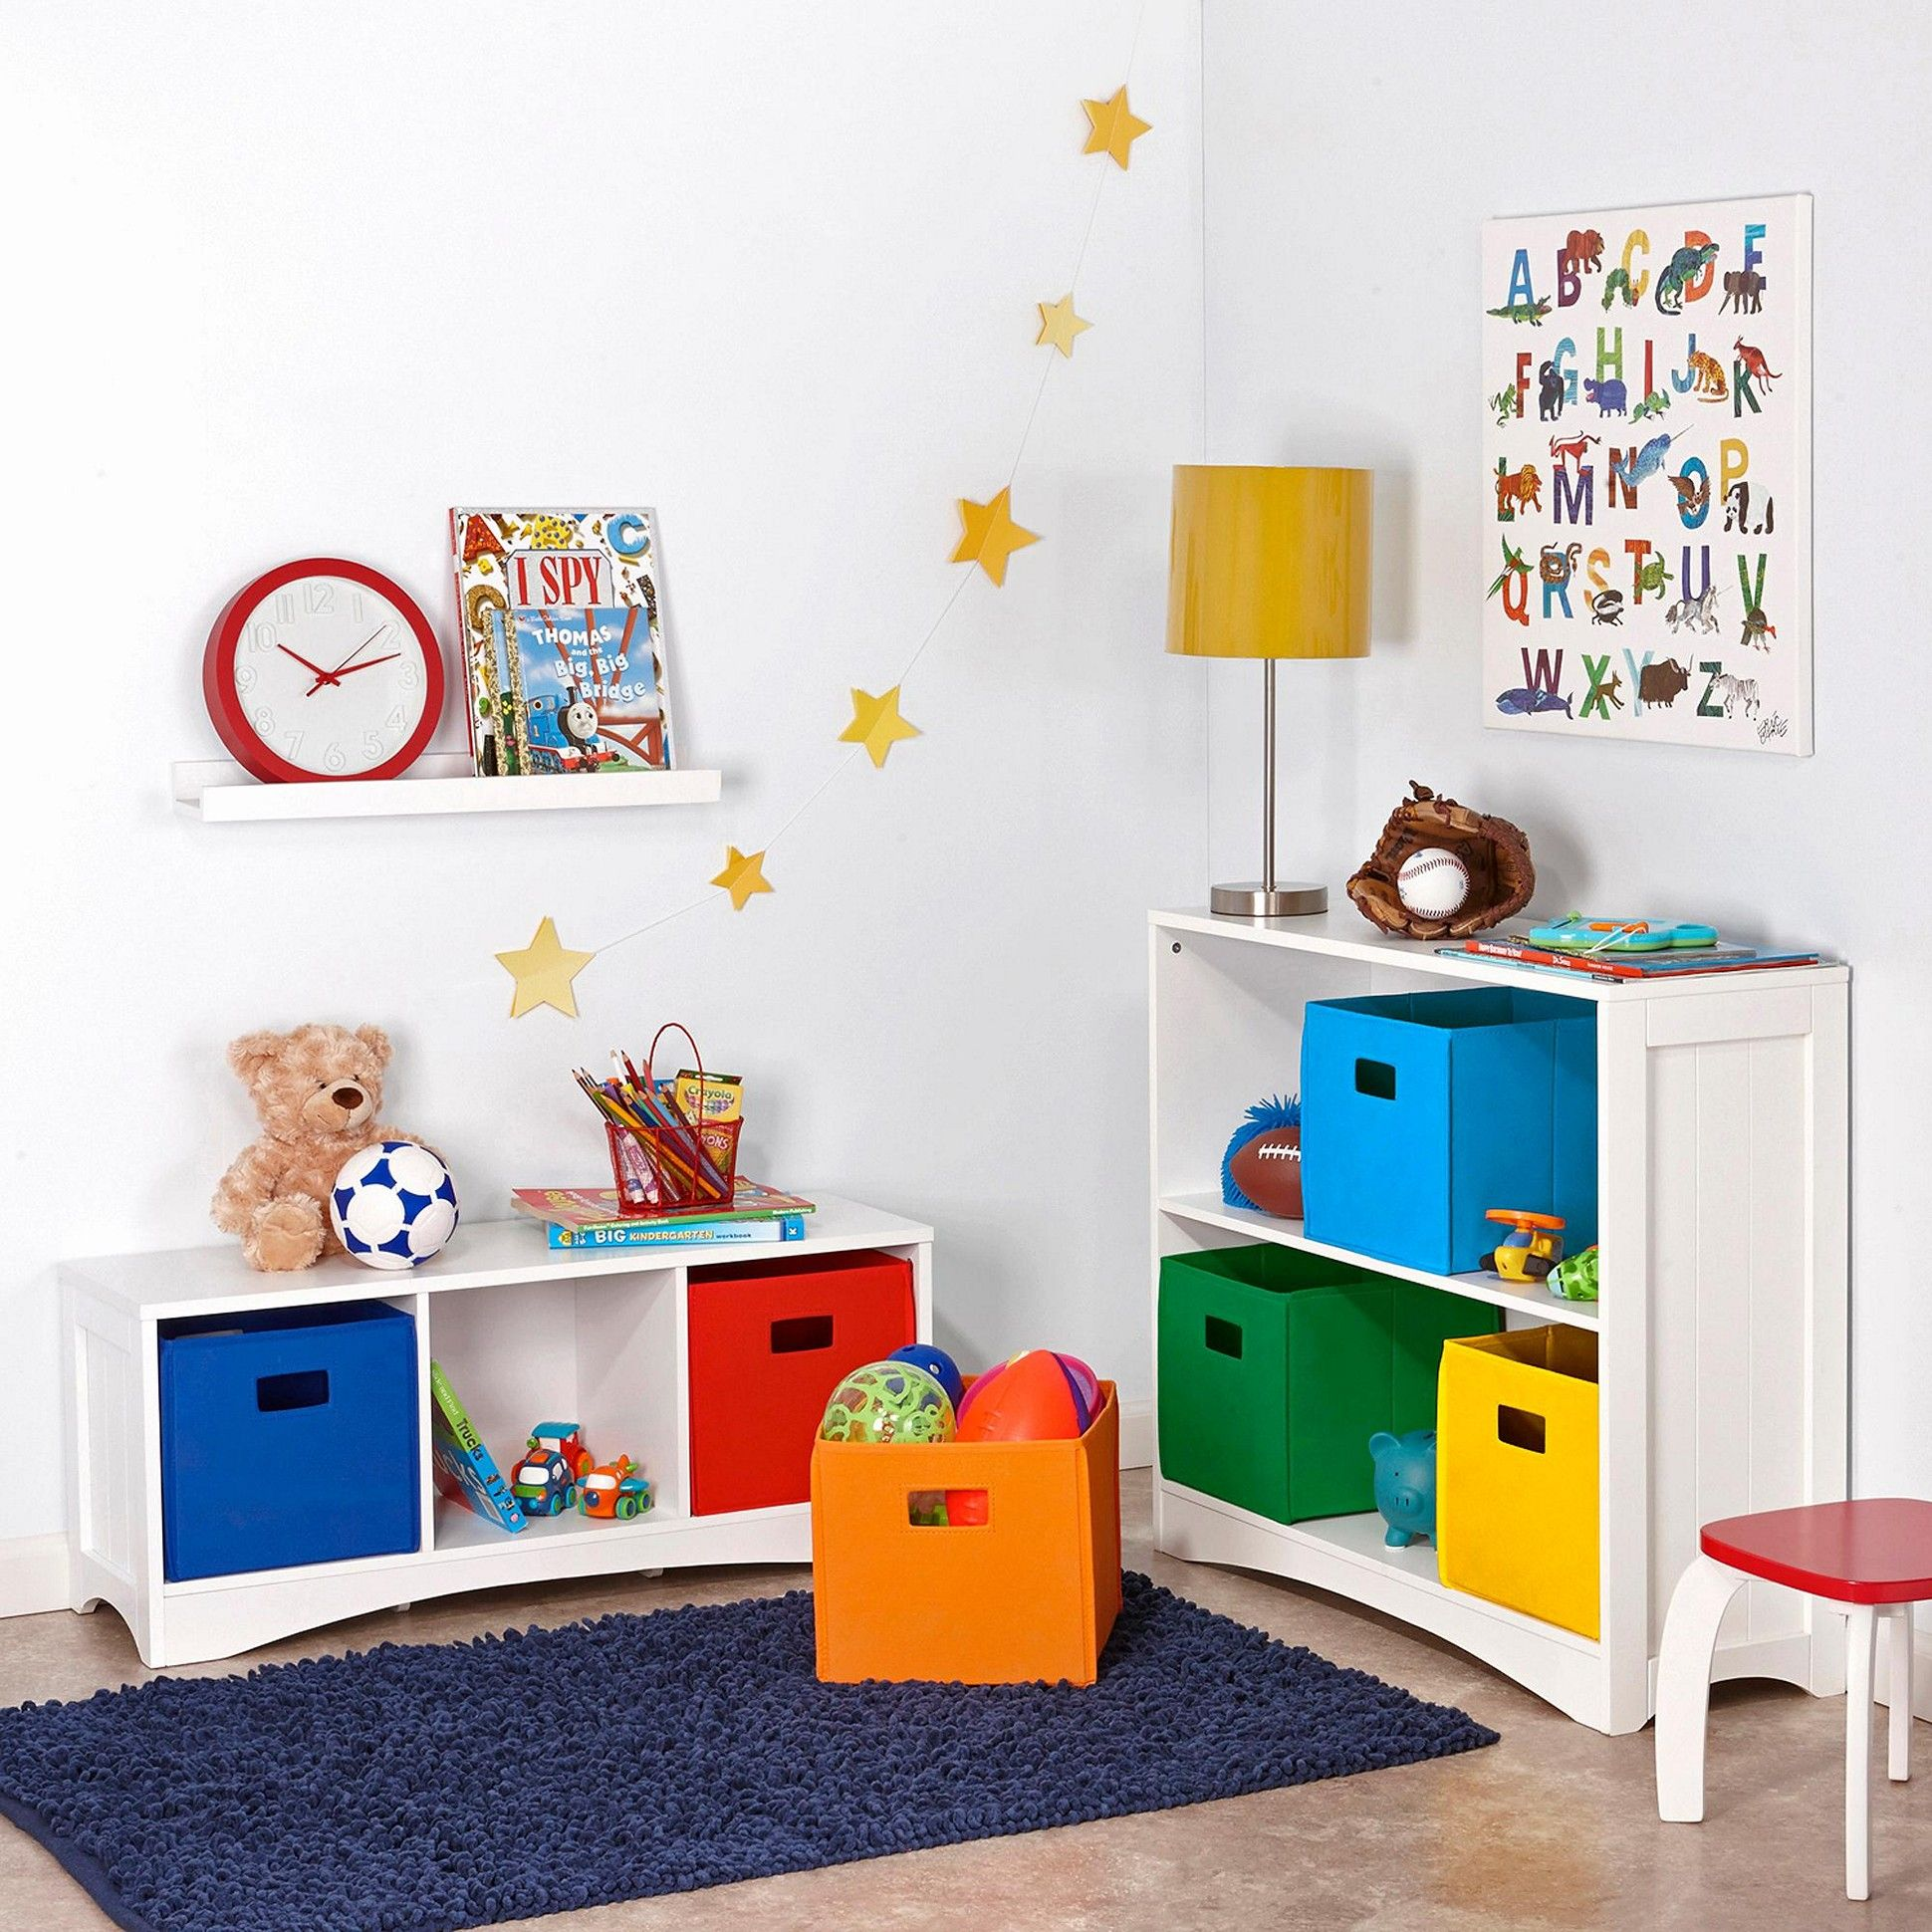 Toy Storage Ideas DIY Plans In A Small Space That Your Kids Will ...